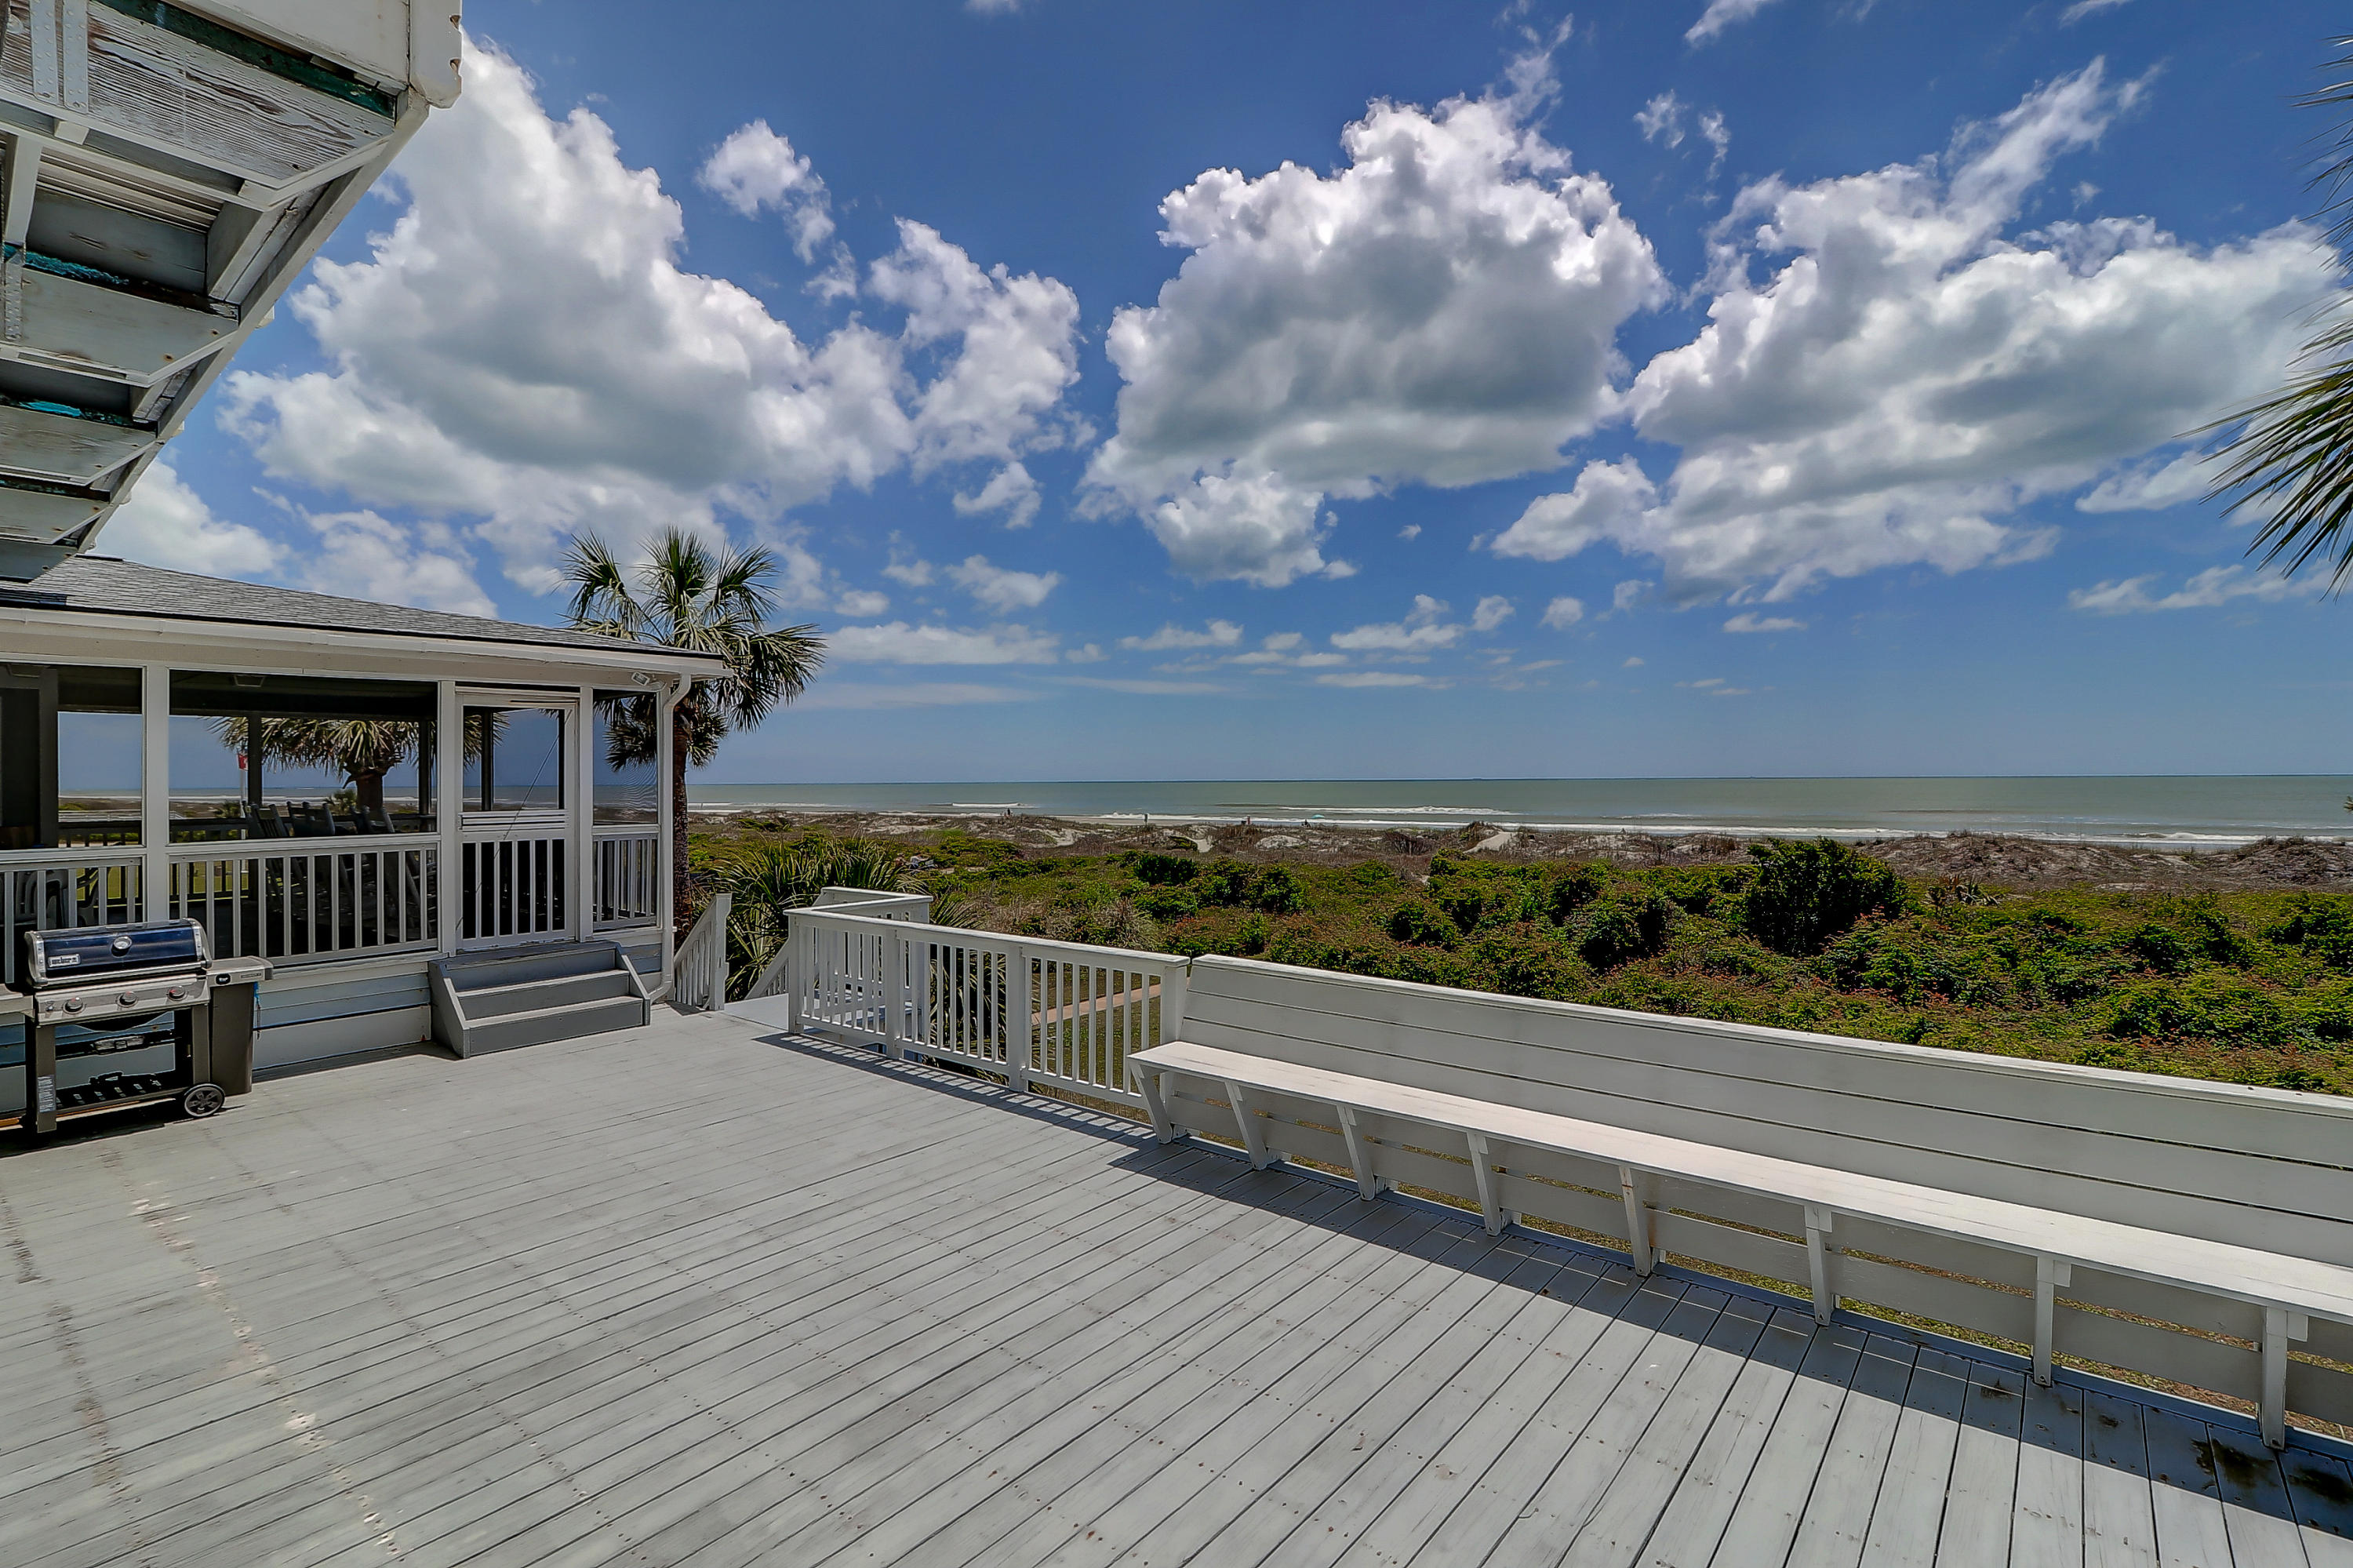 Isle of Palms Homes For Sale - 1 47th (1/13th), Isle of Palms, SC - 34